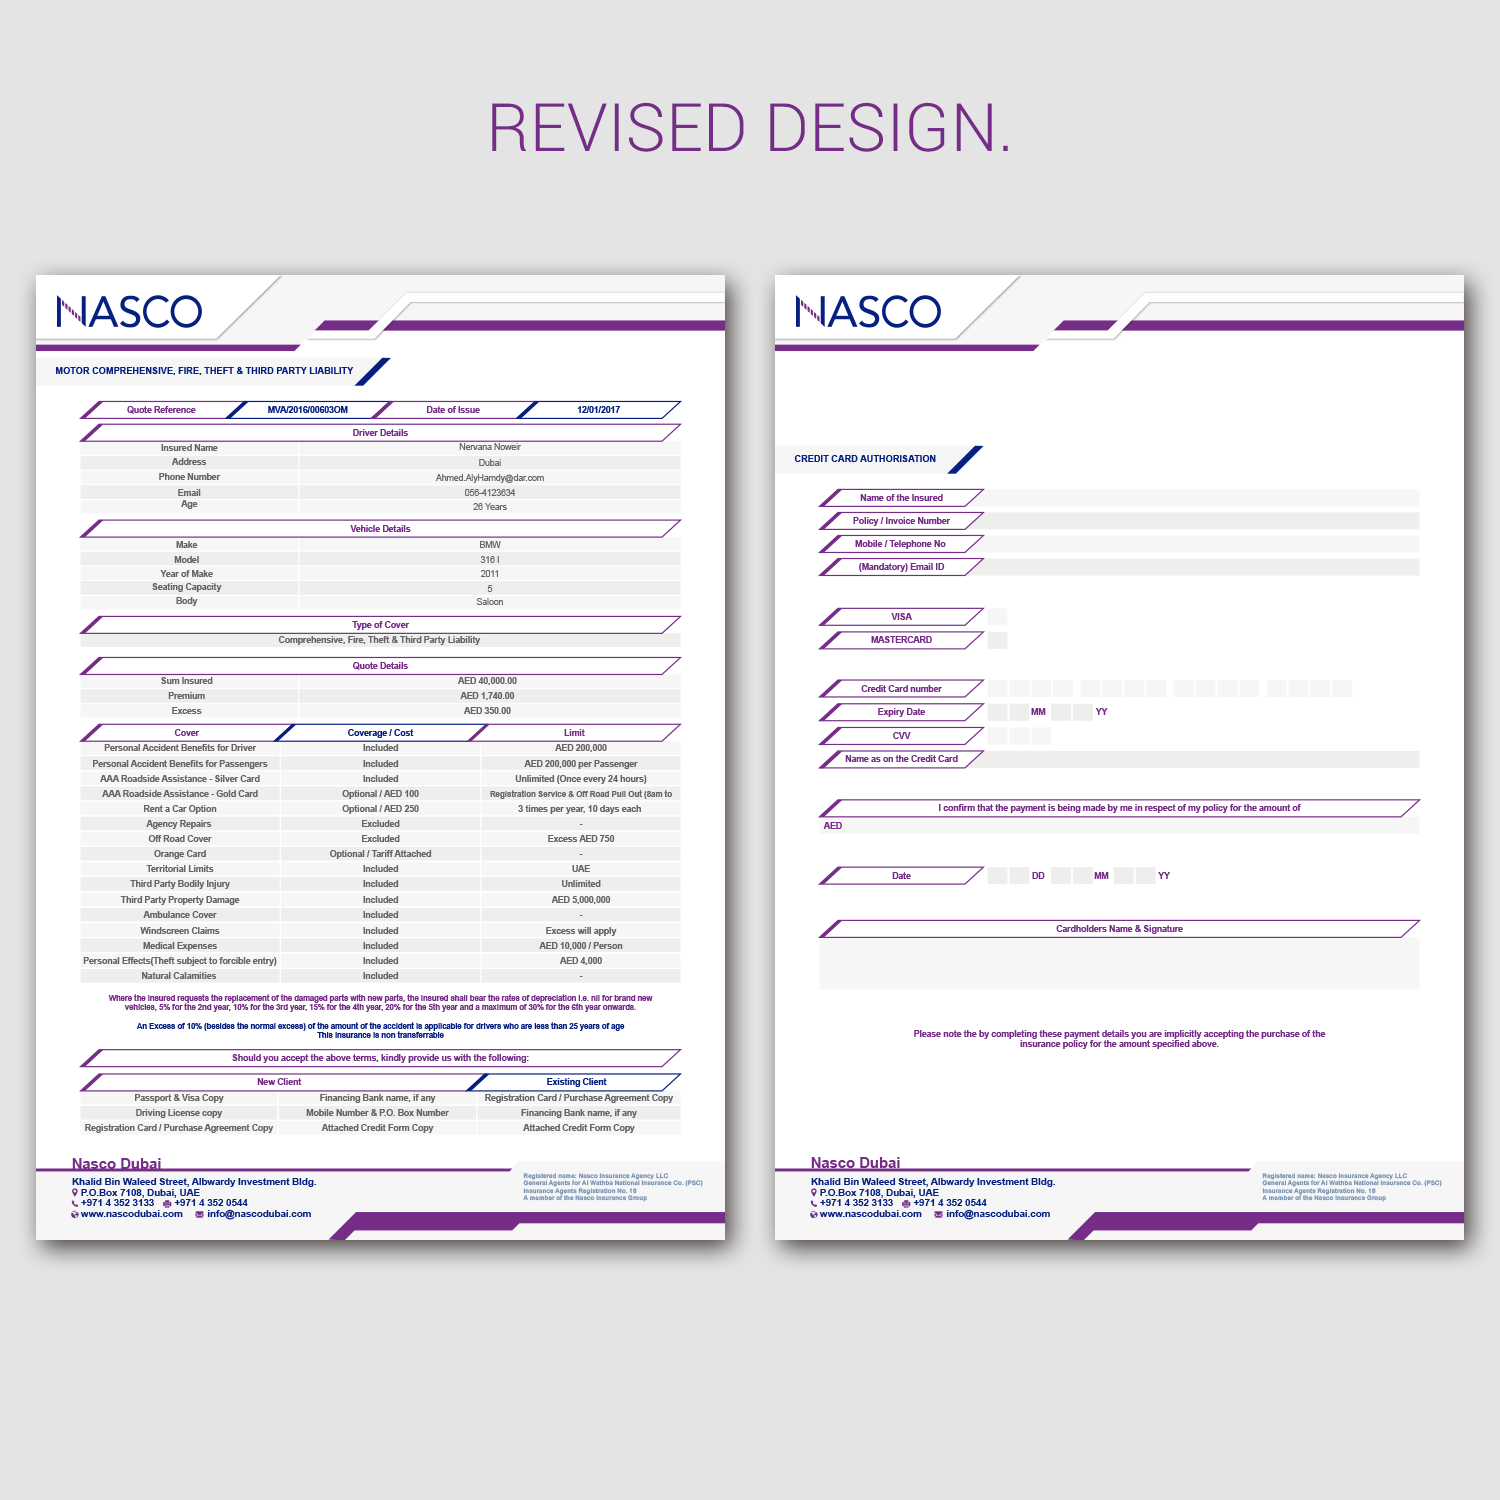 Modern Professional Newsletter Design for NASCO by Nightmist – New Quotation Format